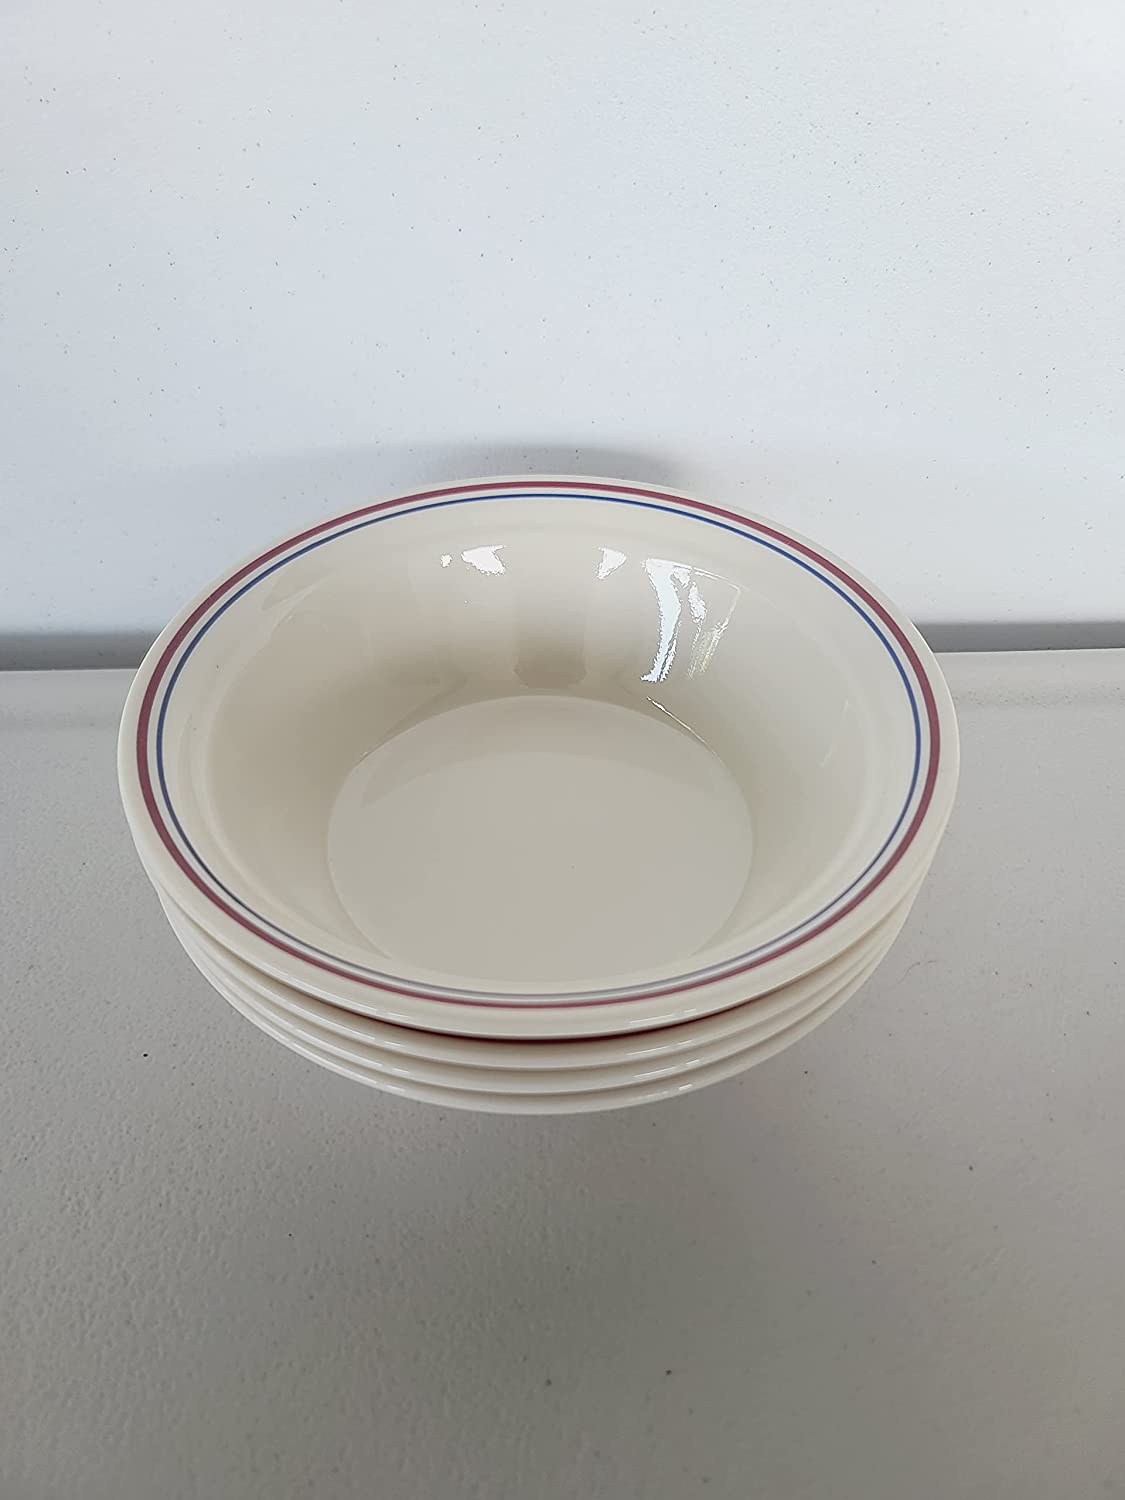 Corning Corelle Abundance Max 48% OFF Soup and Cereal Bowls Set of Bowl - 4 Ranking TOP1